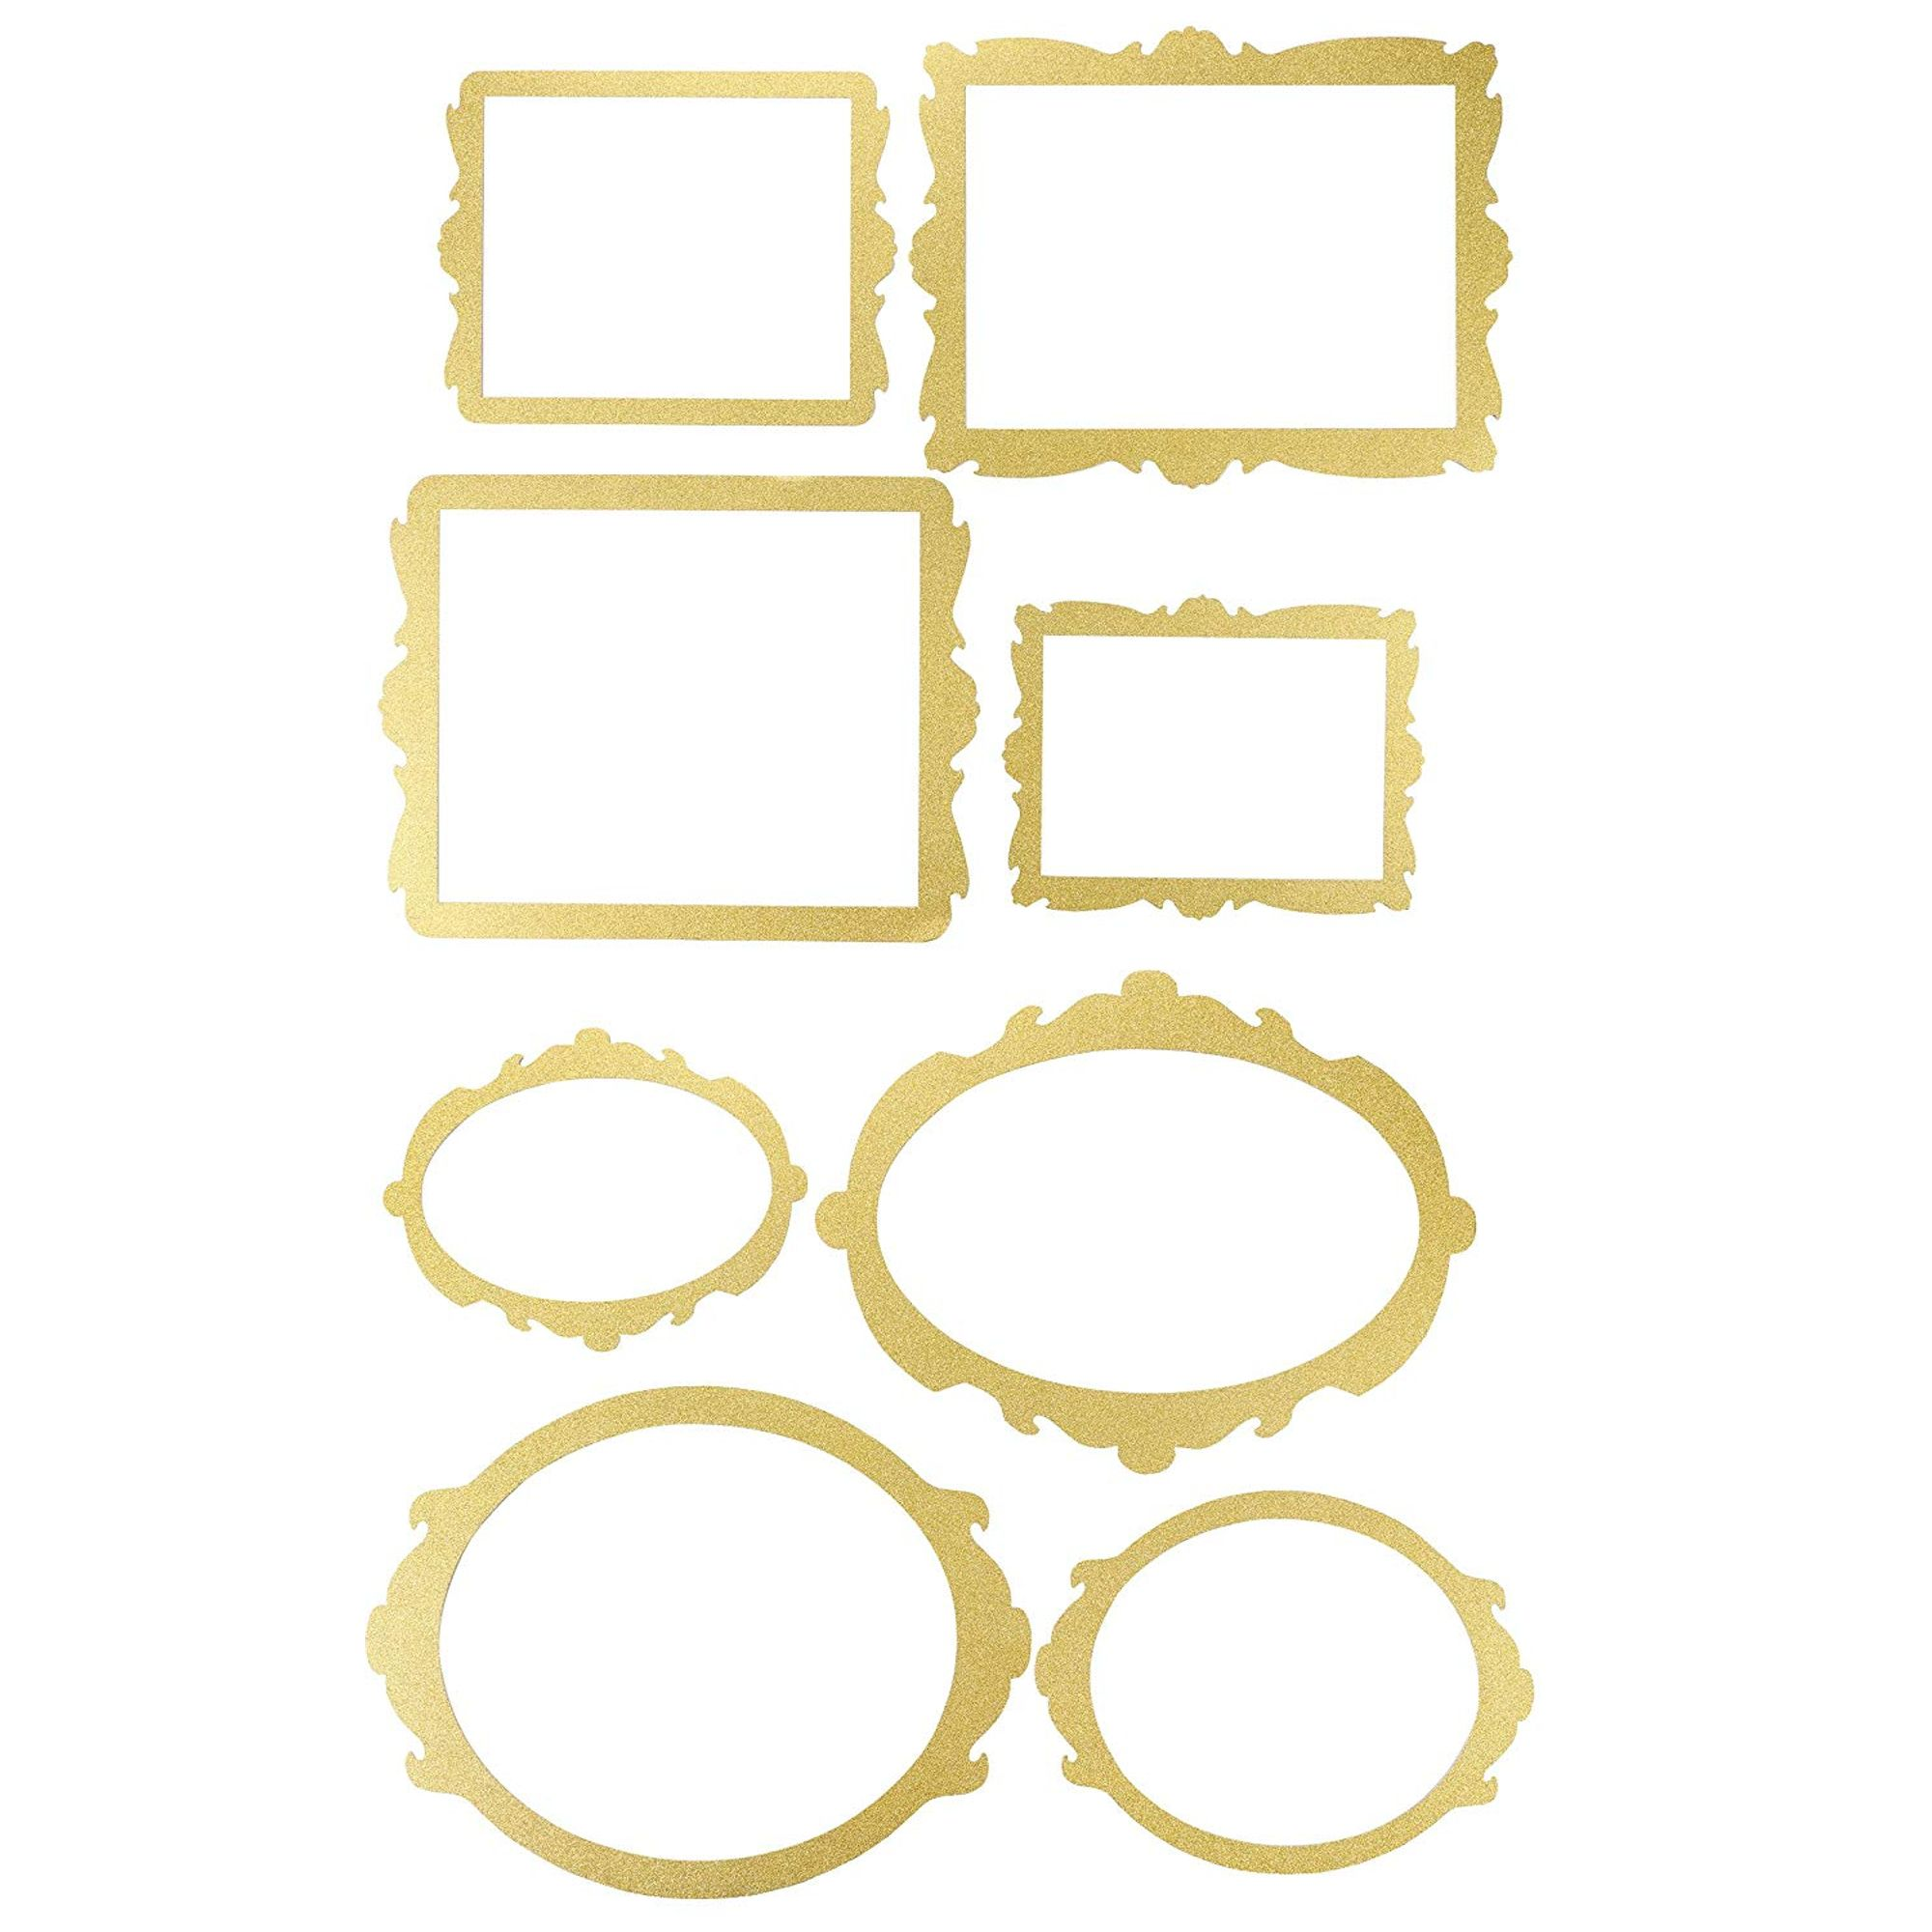 Blue Panda Photo Booth Frame 8 Pack Gold Glitter Picture Frame Party Supplies Selfie Frame Cutouts Party Favors For Wedding Birthday Party Bridal Shower Bachelorette Party Walmart Com Walmart Com